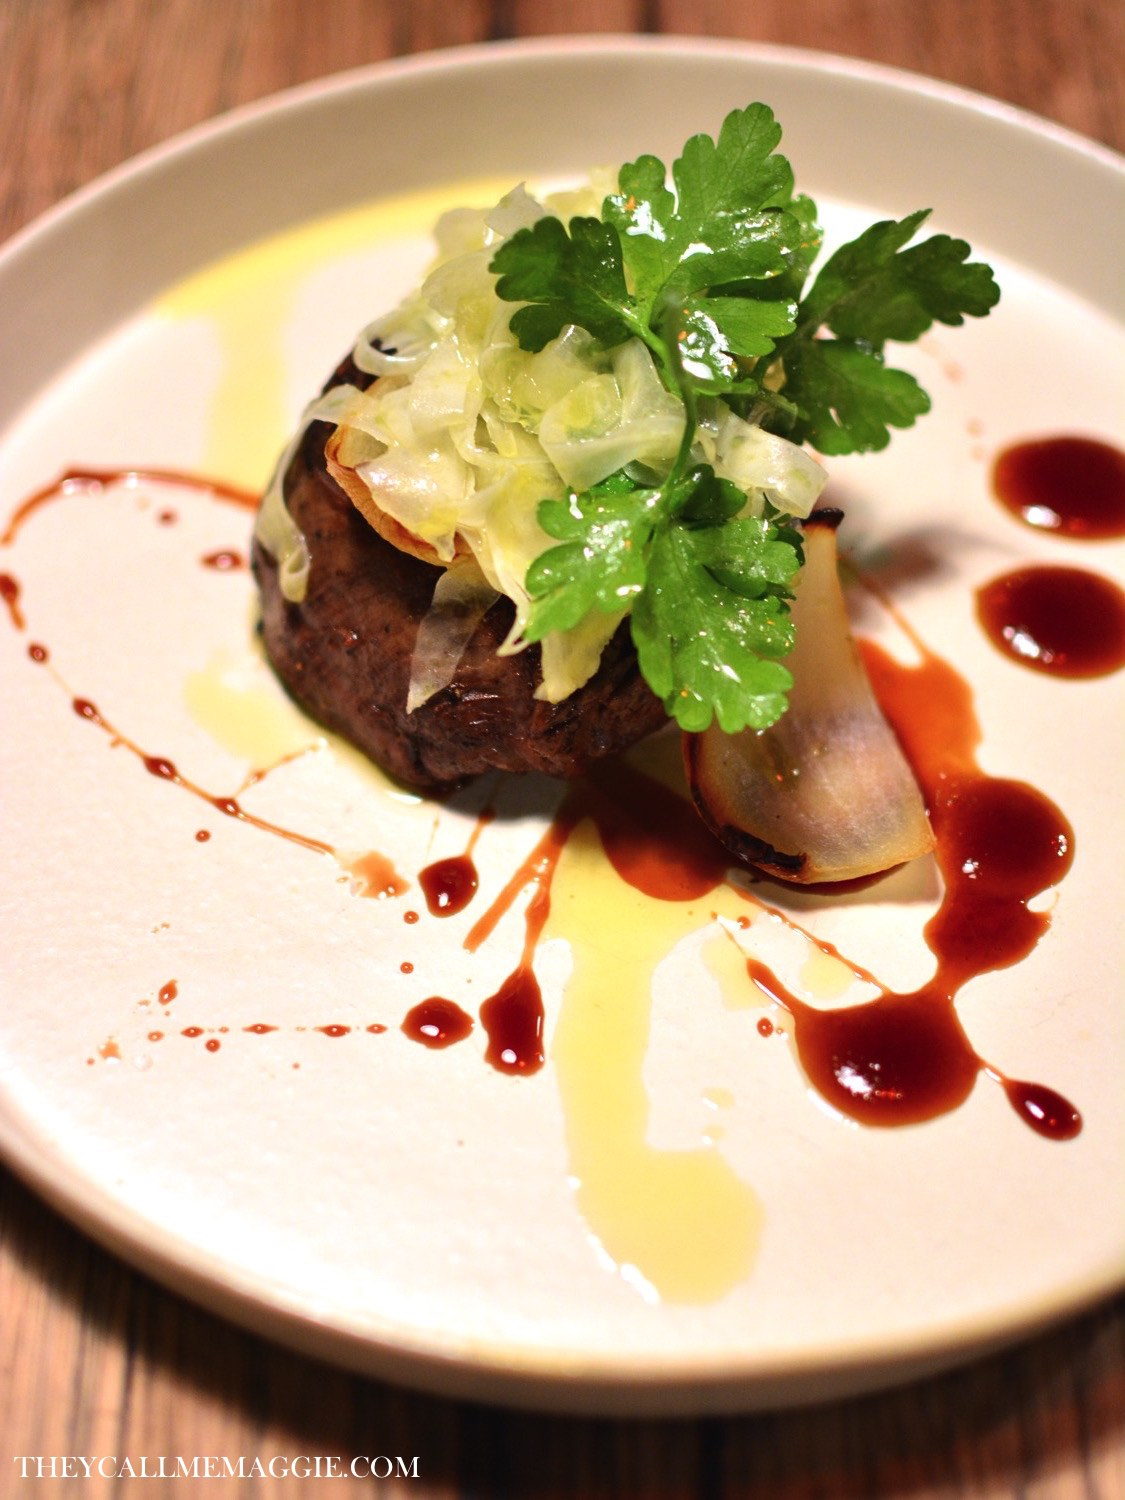 Gippsland beef fillet with shaved fennel and parsley